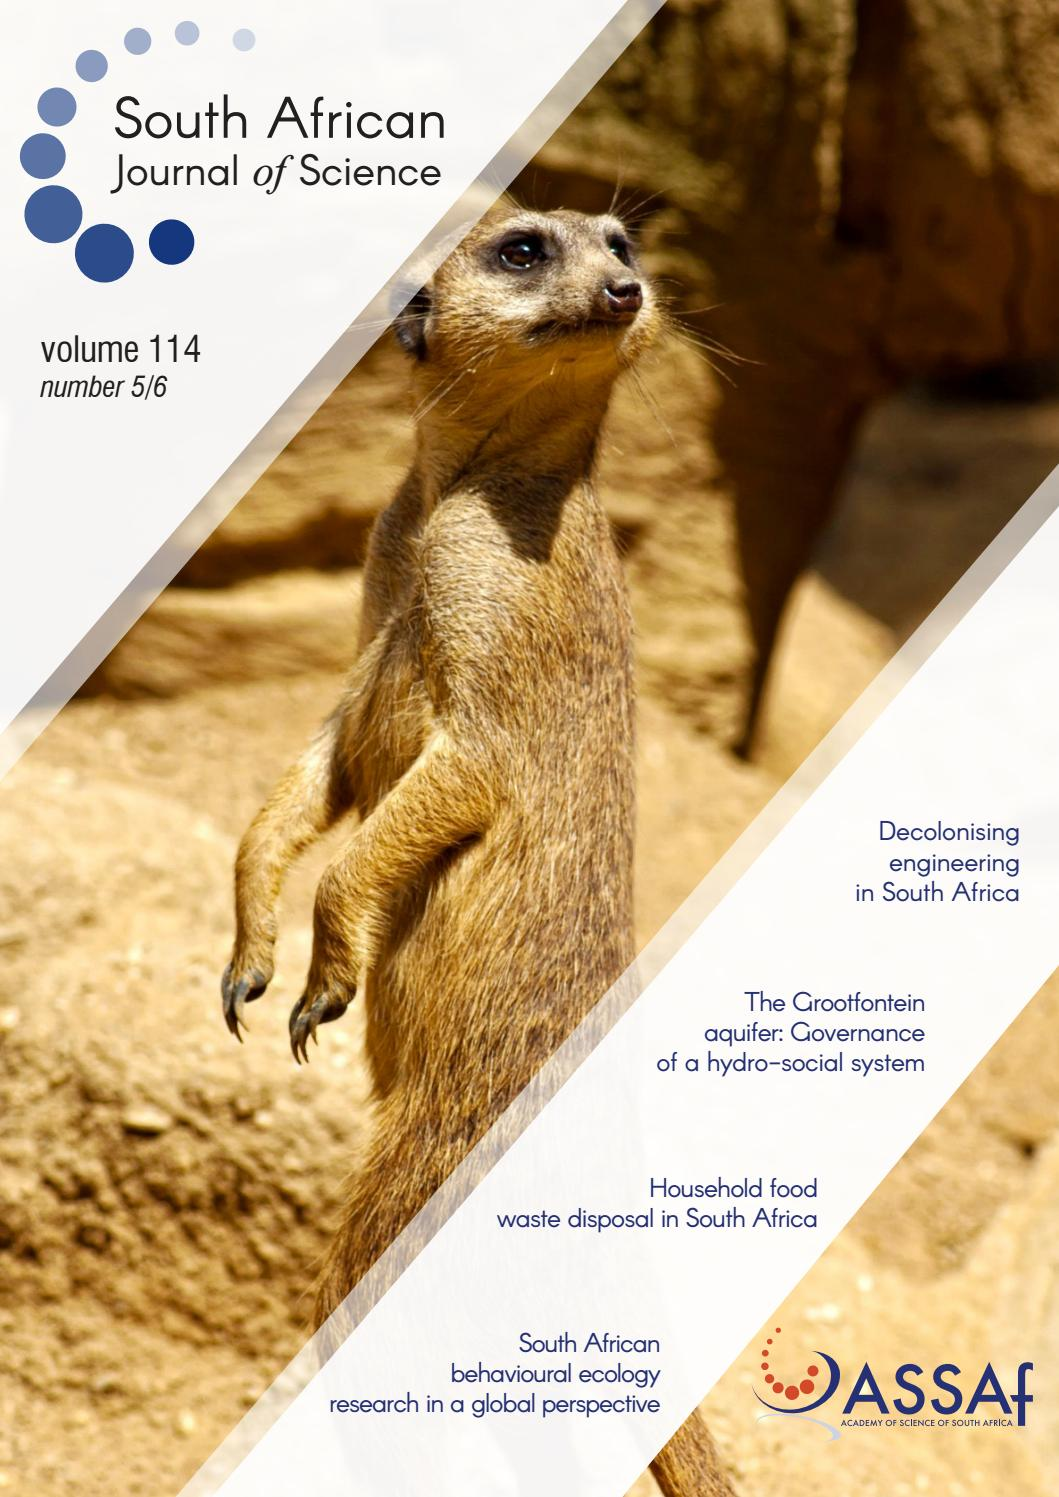 South African Journal of Science Volume 114 Issue 5/6 by South